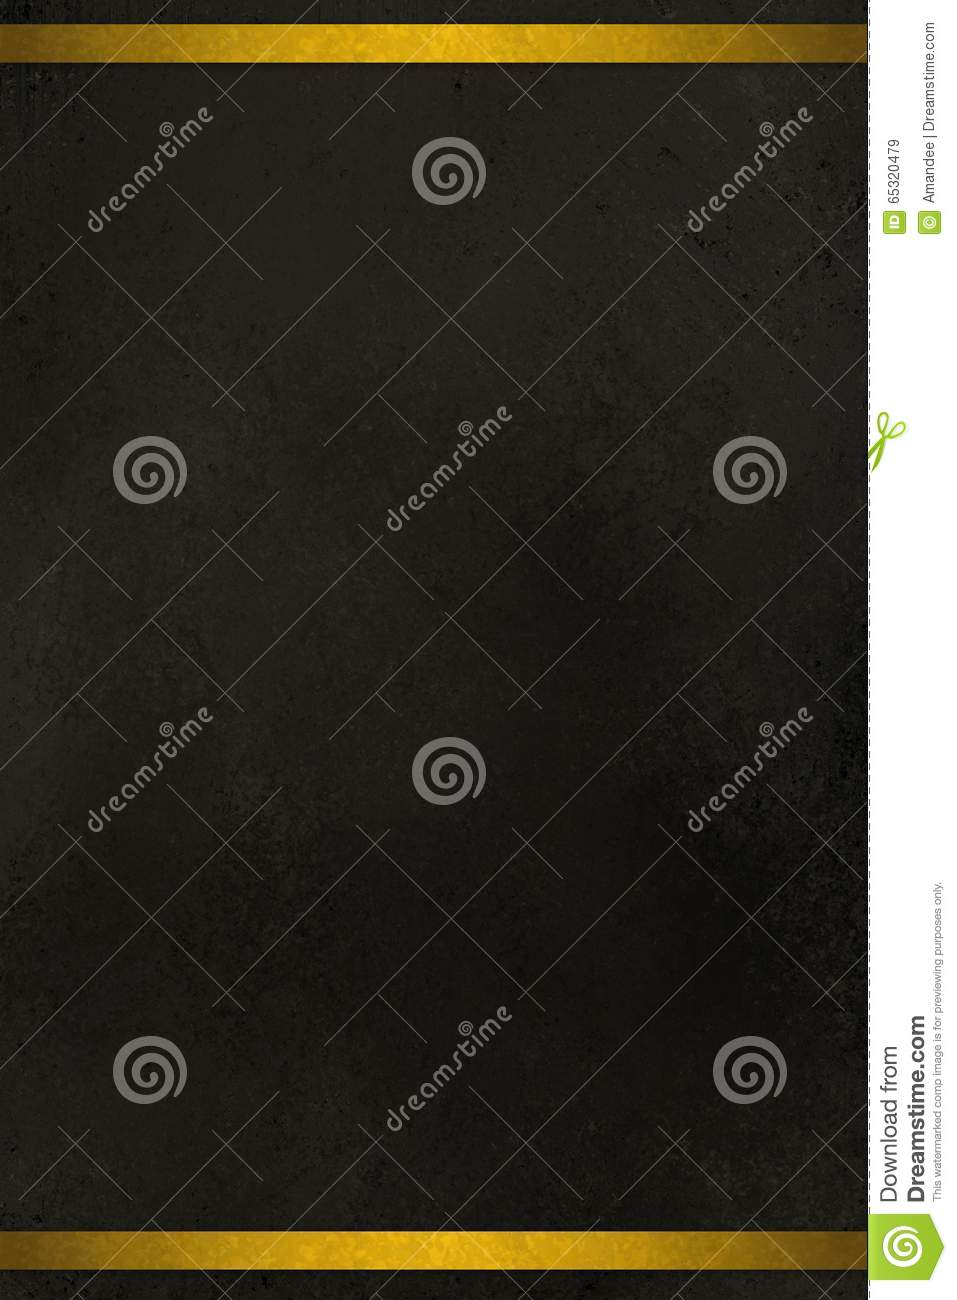 black background with gold ribbon or stripes on border